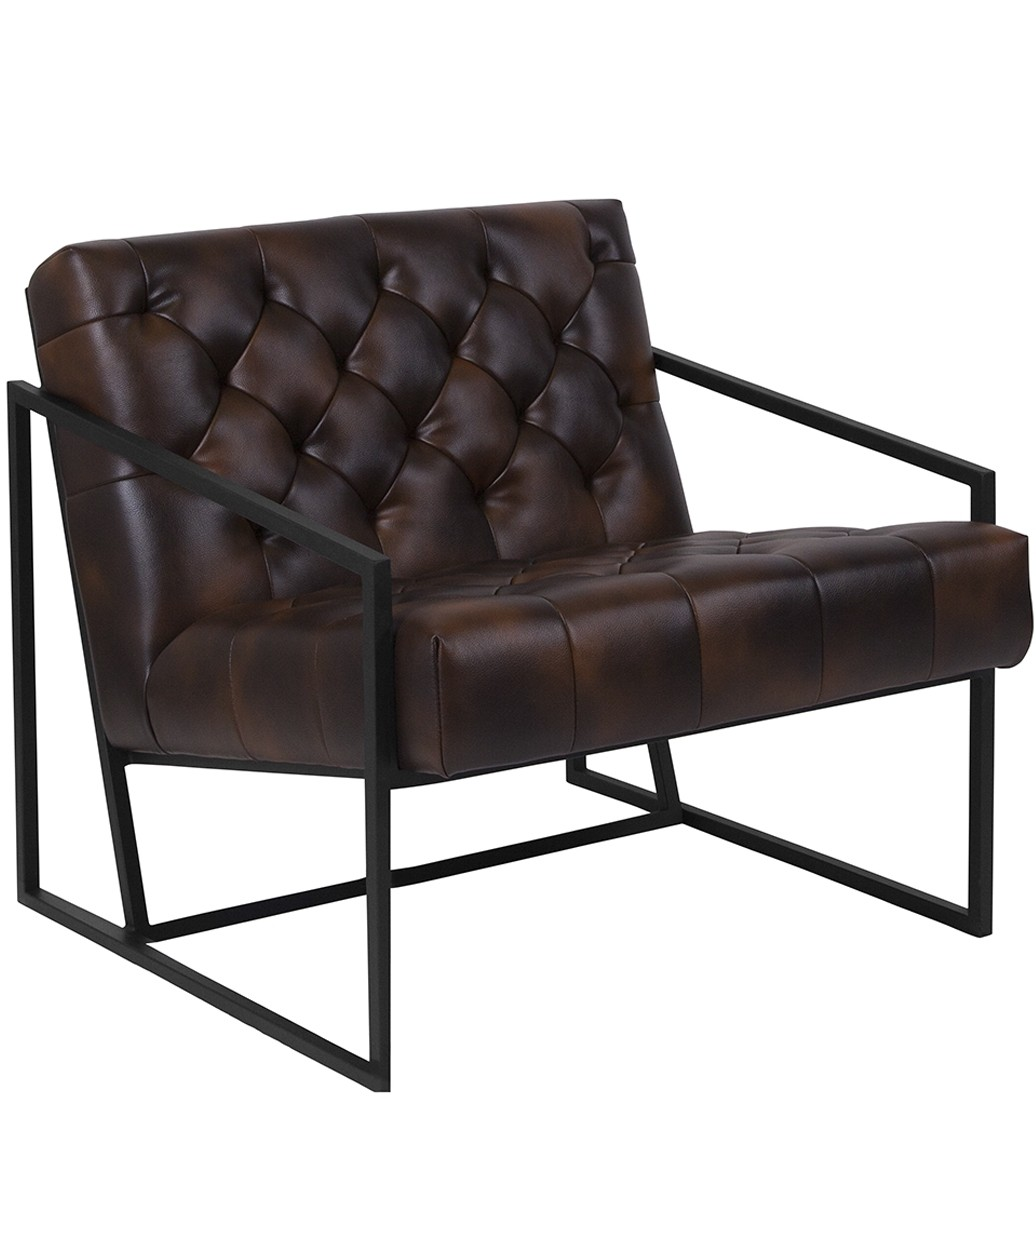 sc 1 st  Buy-Rite Beauty & Keane Tufted Leather Chair w/ Metal Frame